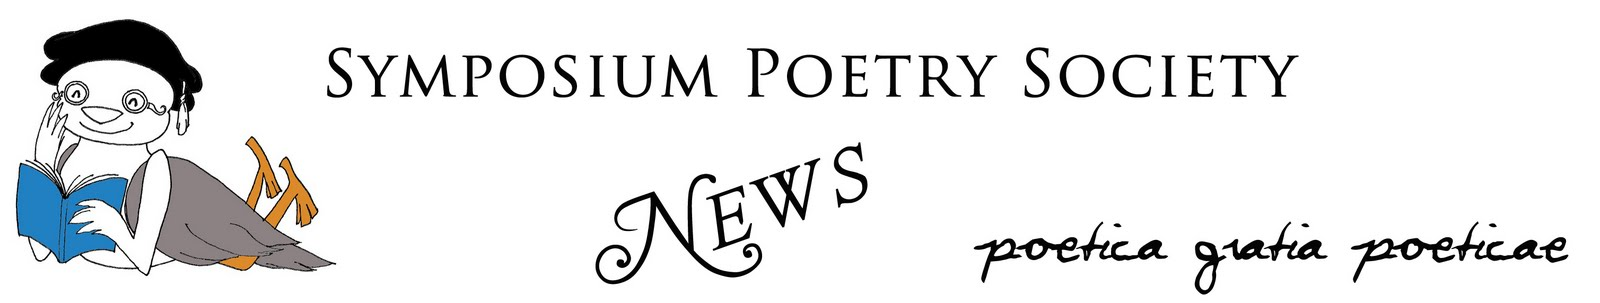 Symposium Poetry Society News